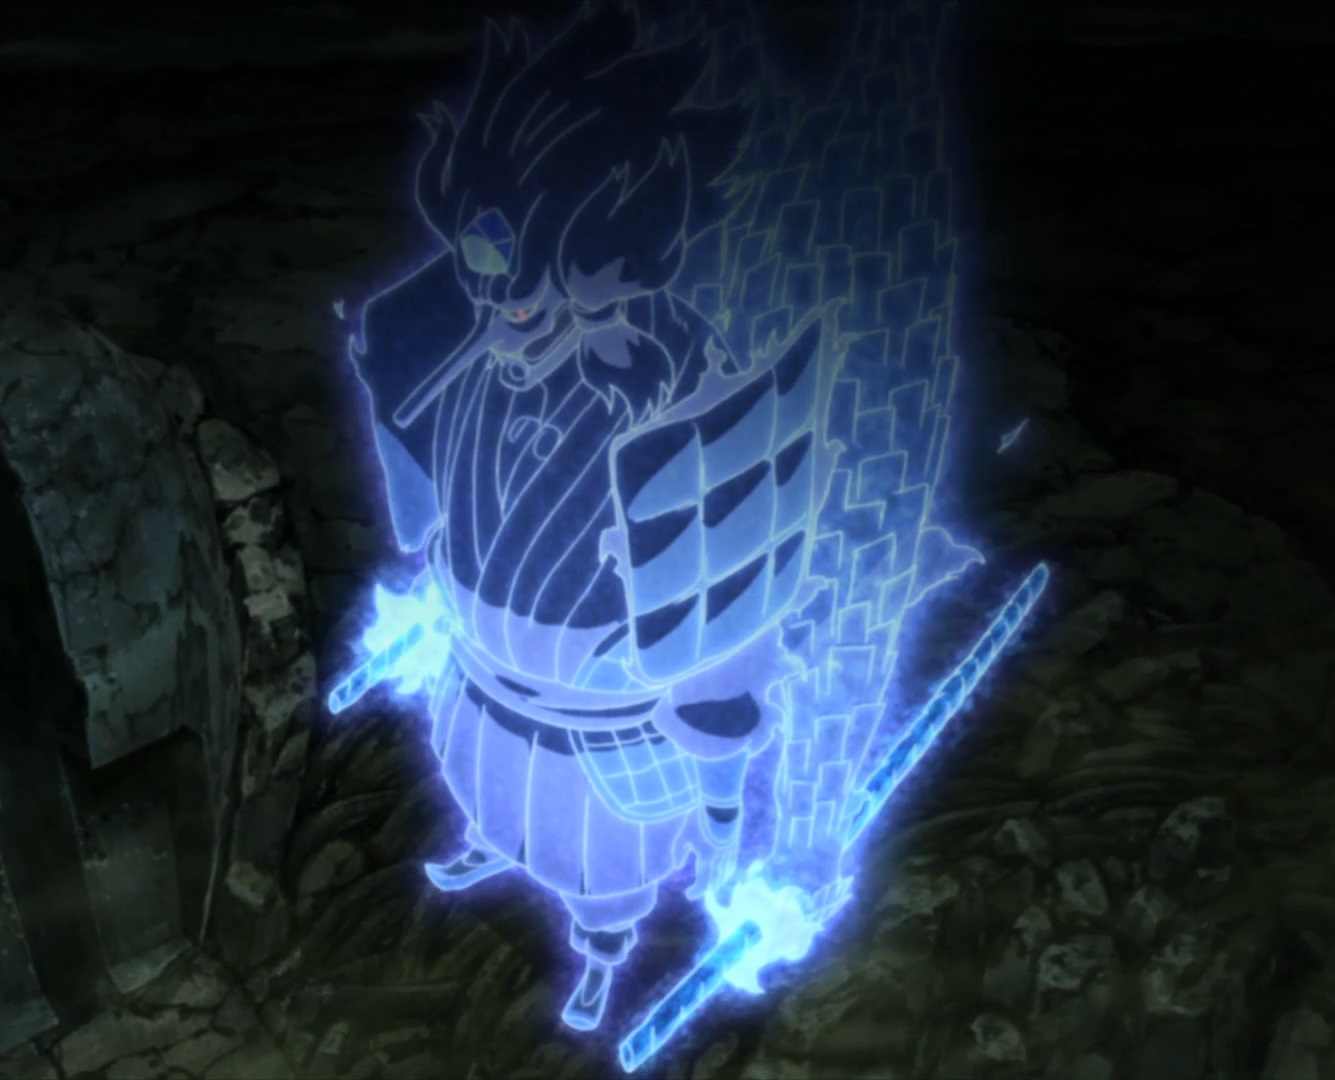 Image Gallery of Sasuke Susanoo Final Form With Legs